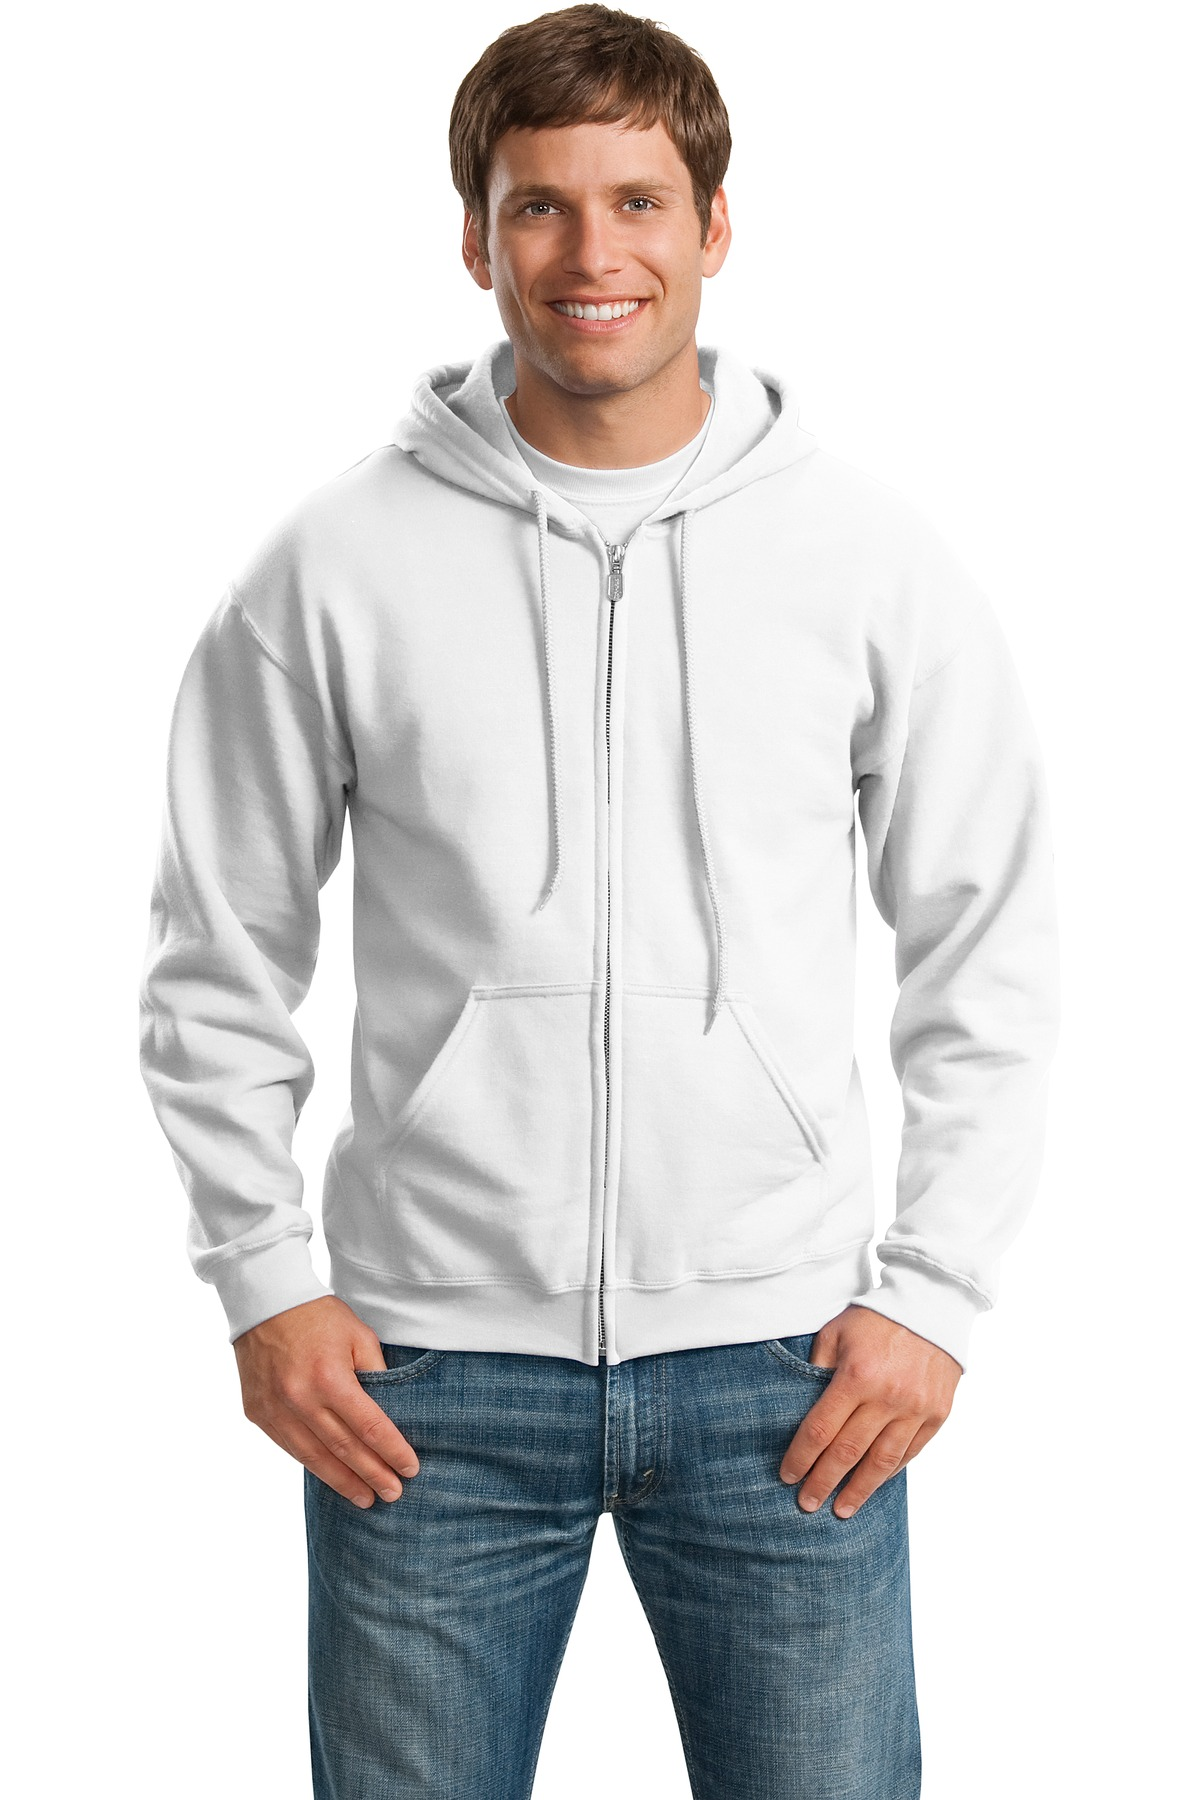 Gildan ®  - Heavy Blend™ Full-Zip Hooded Sweatshirt. 18600 - White